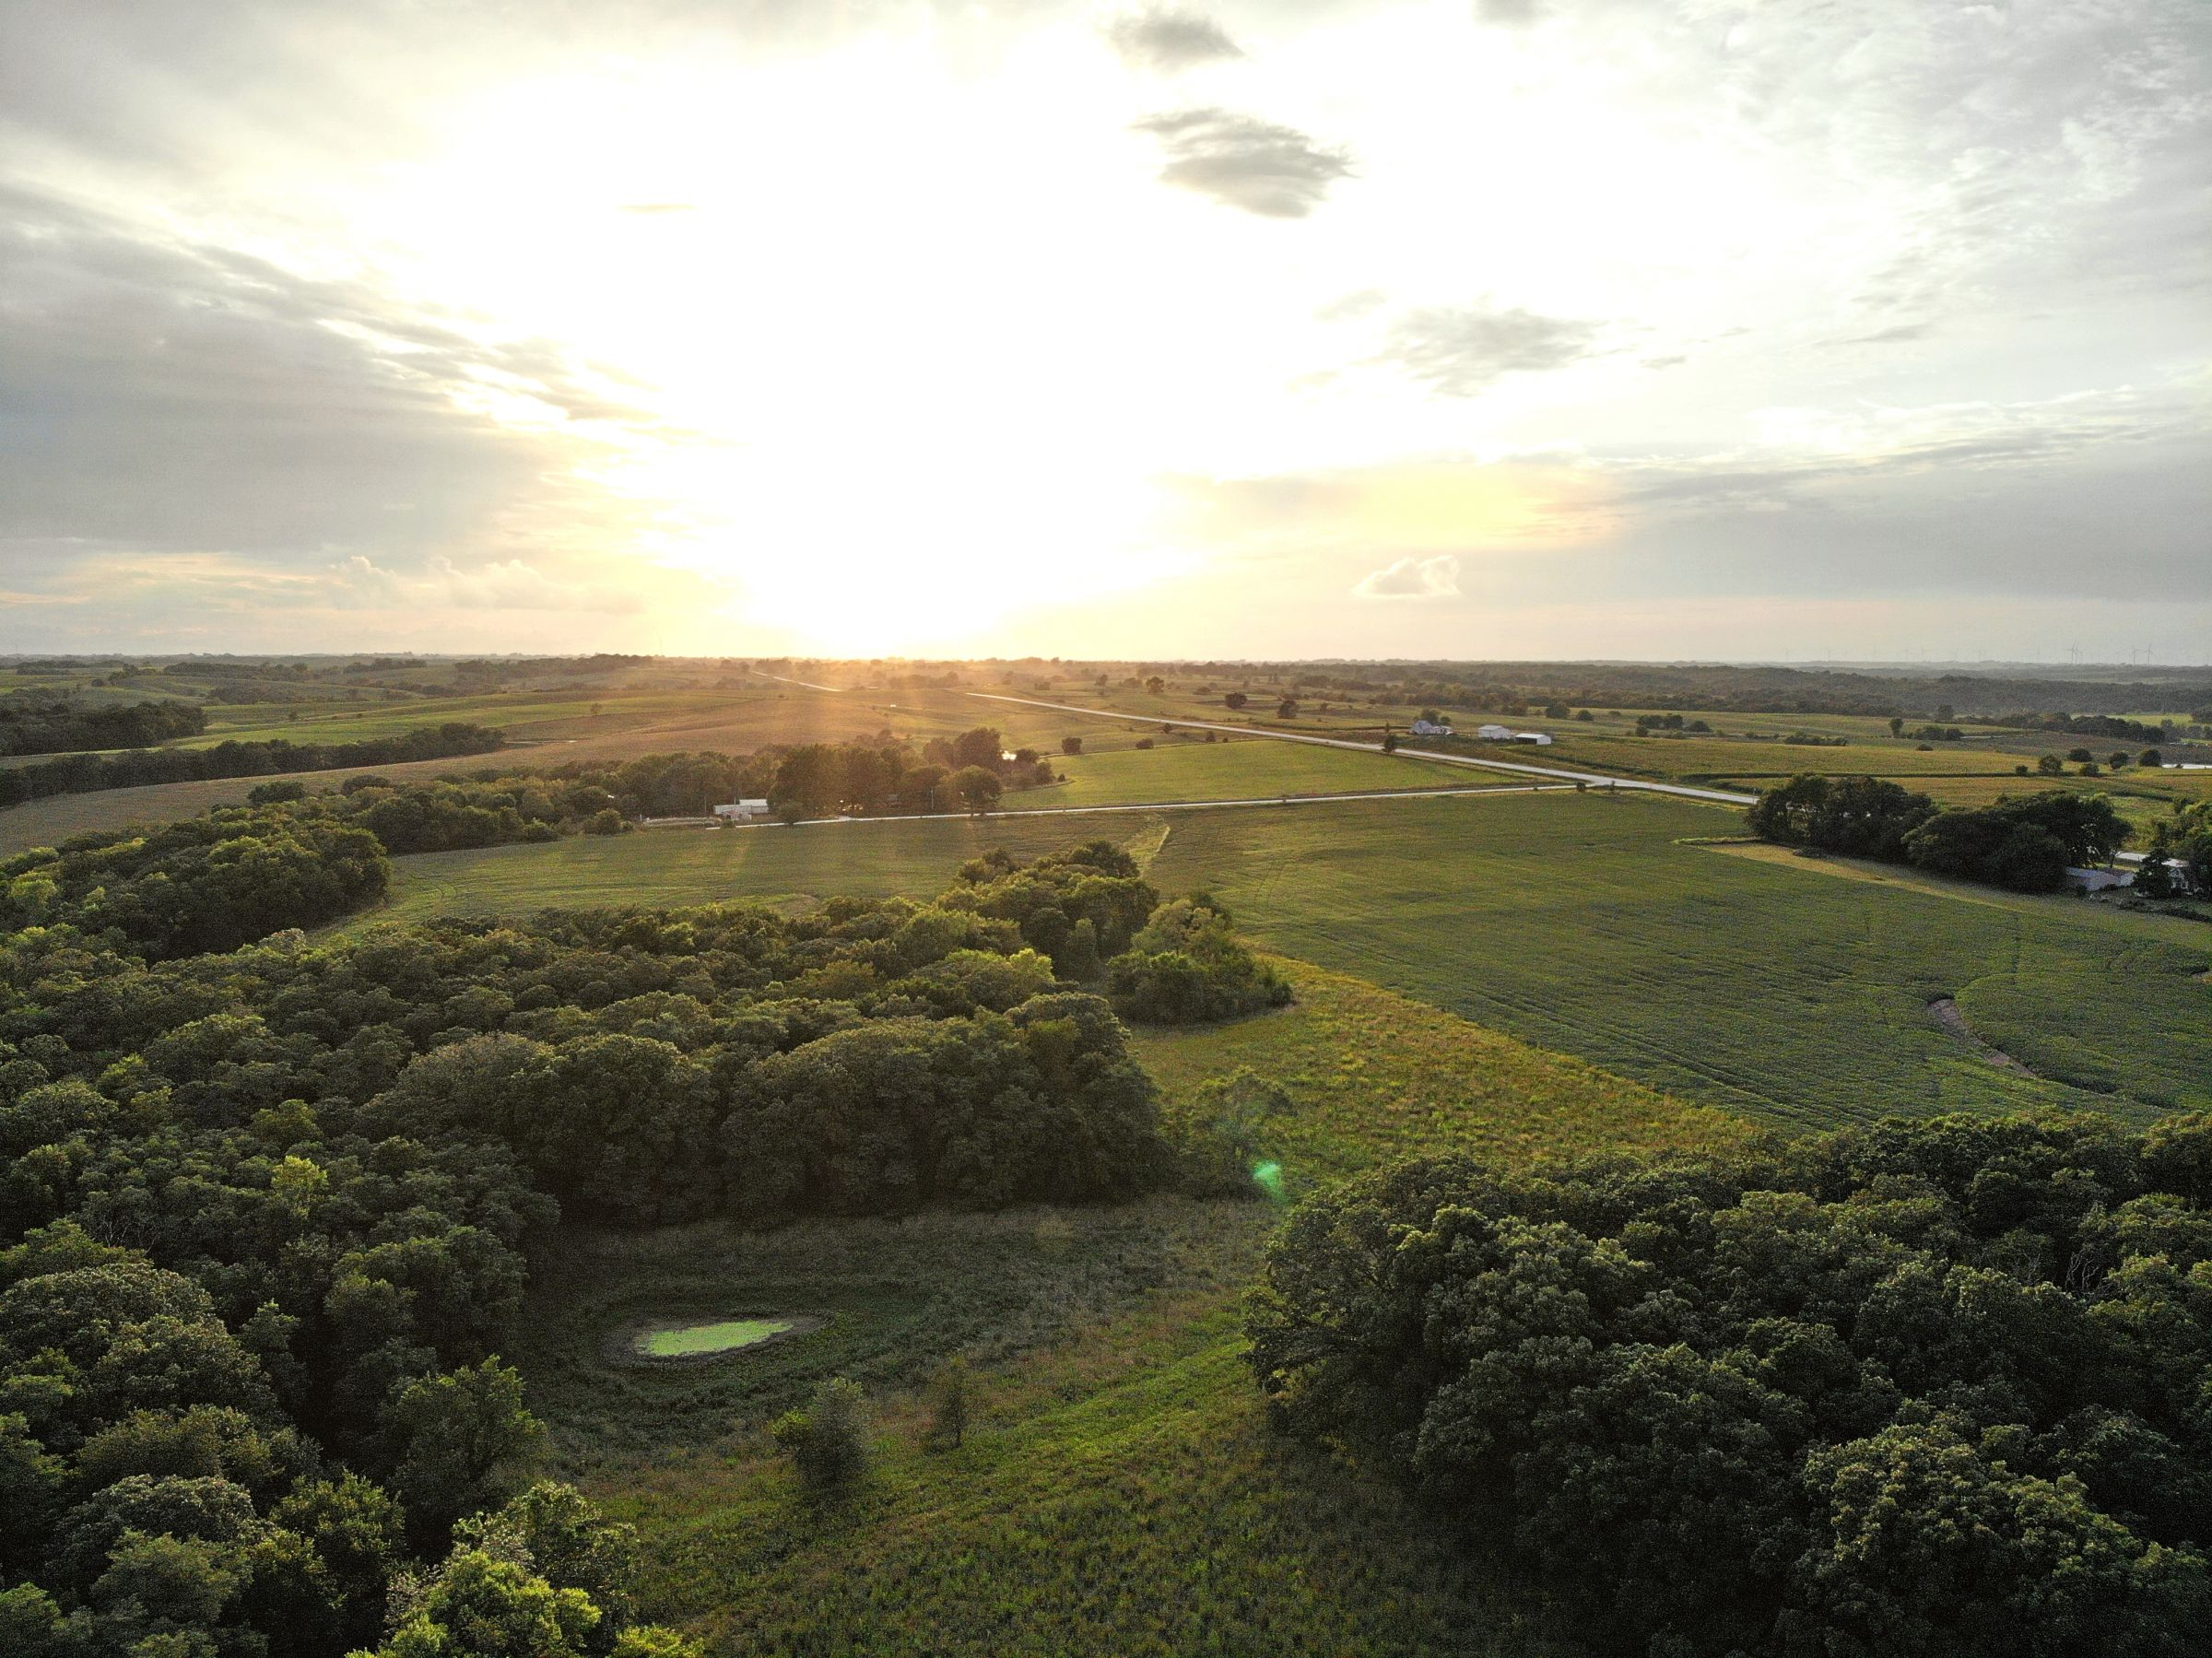 land-madison-county-iowa-123-acres-listing-number-15122-3-2020-08-24-022518.jpg